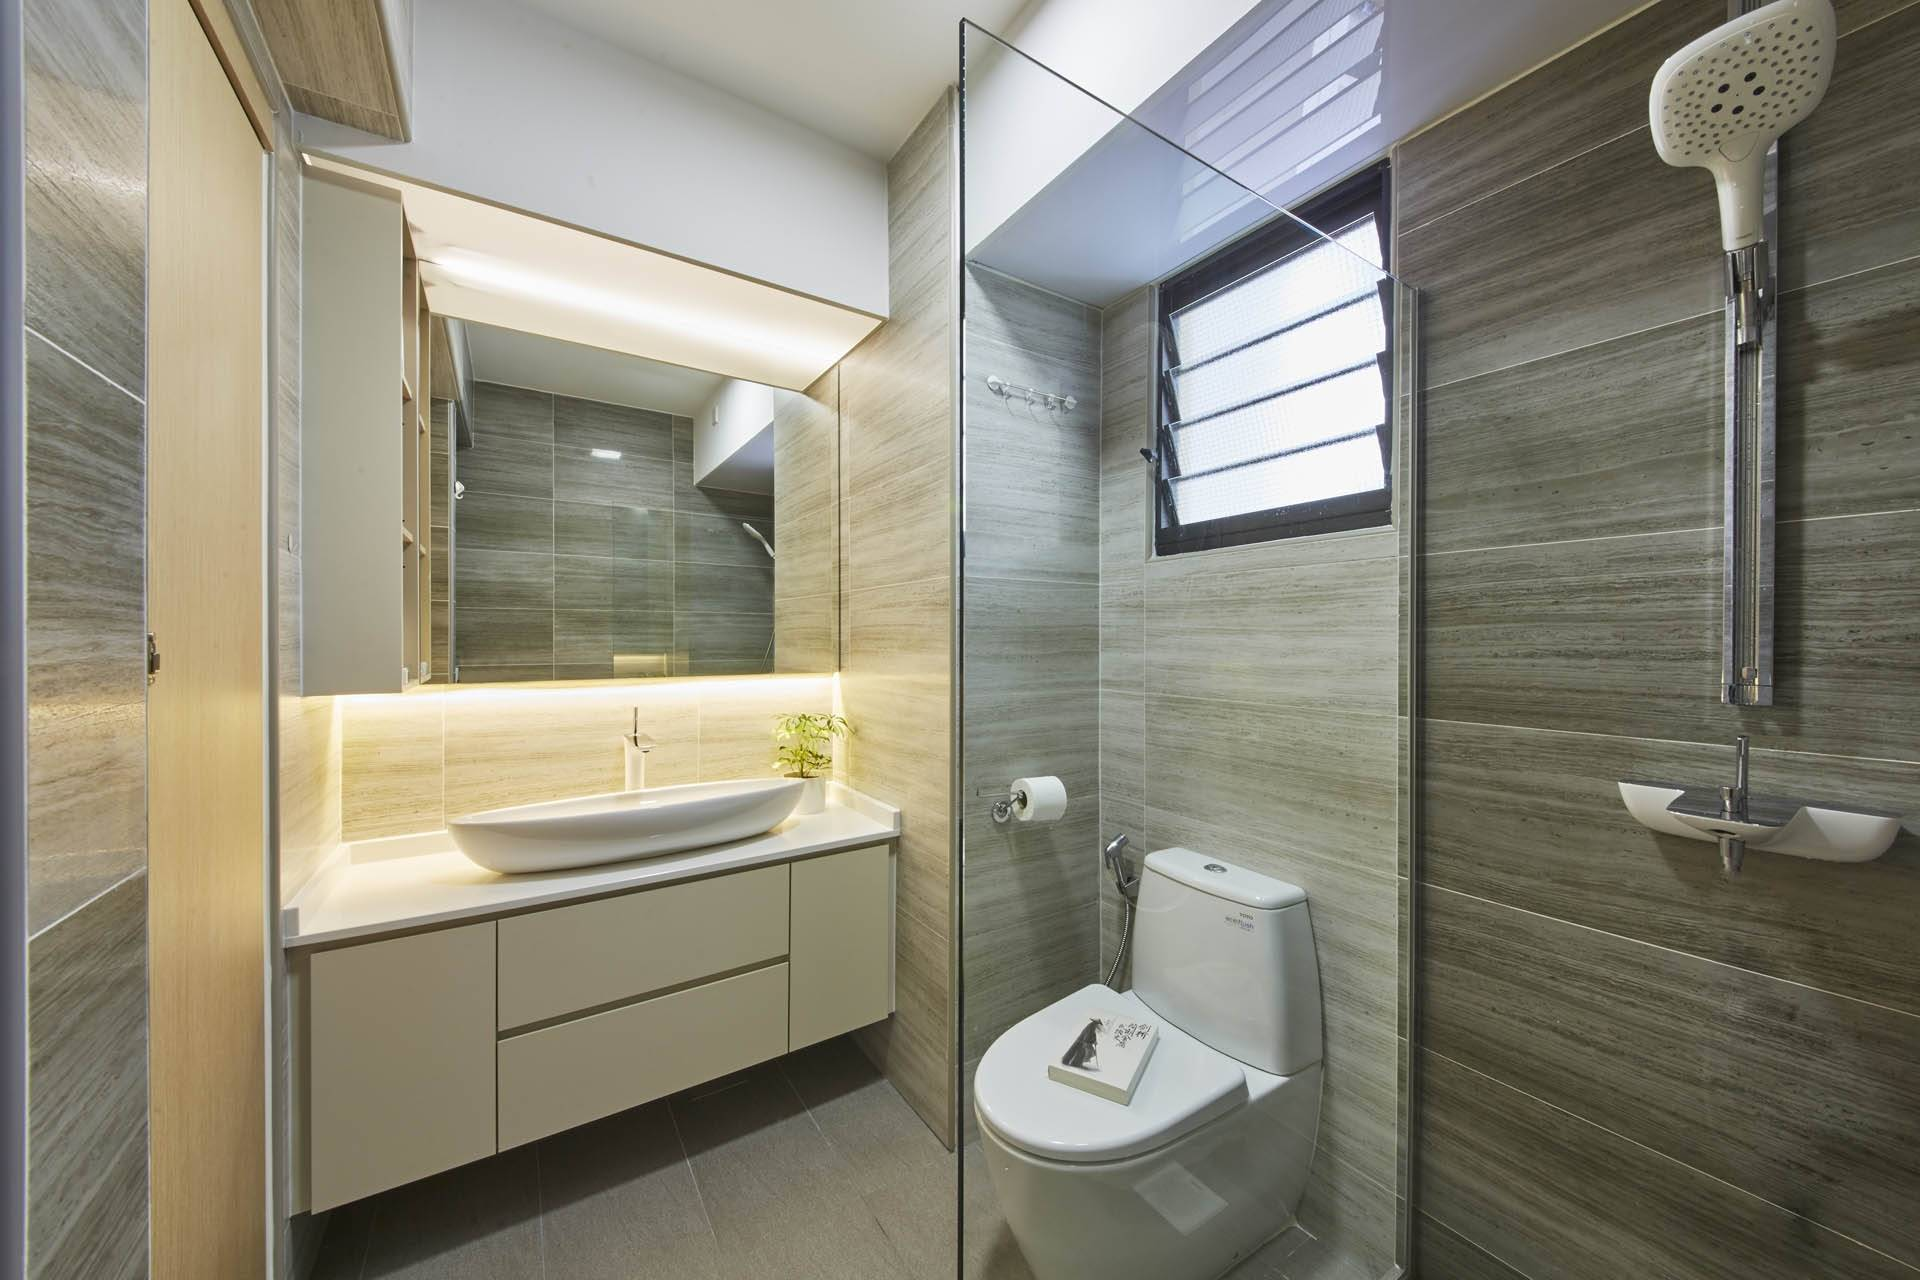 Hdb bathroom design for Toilet design for home